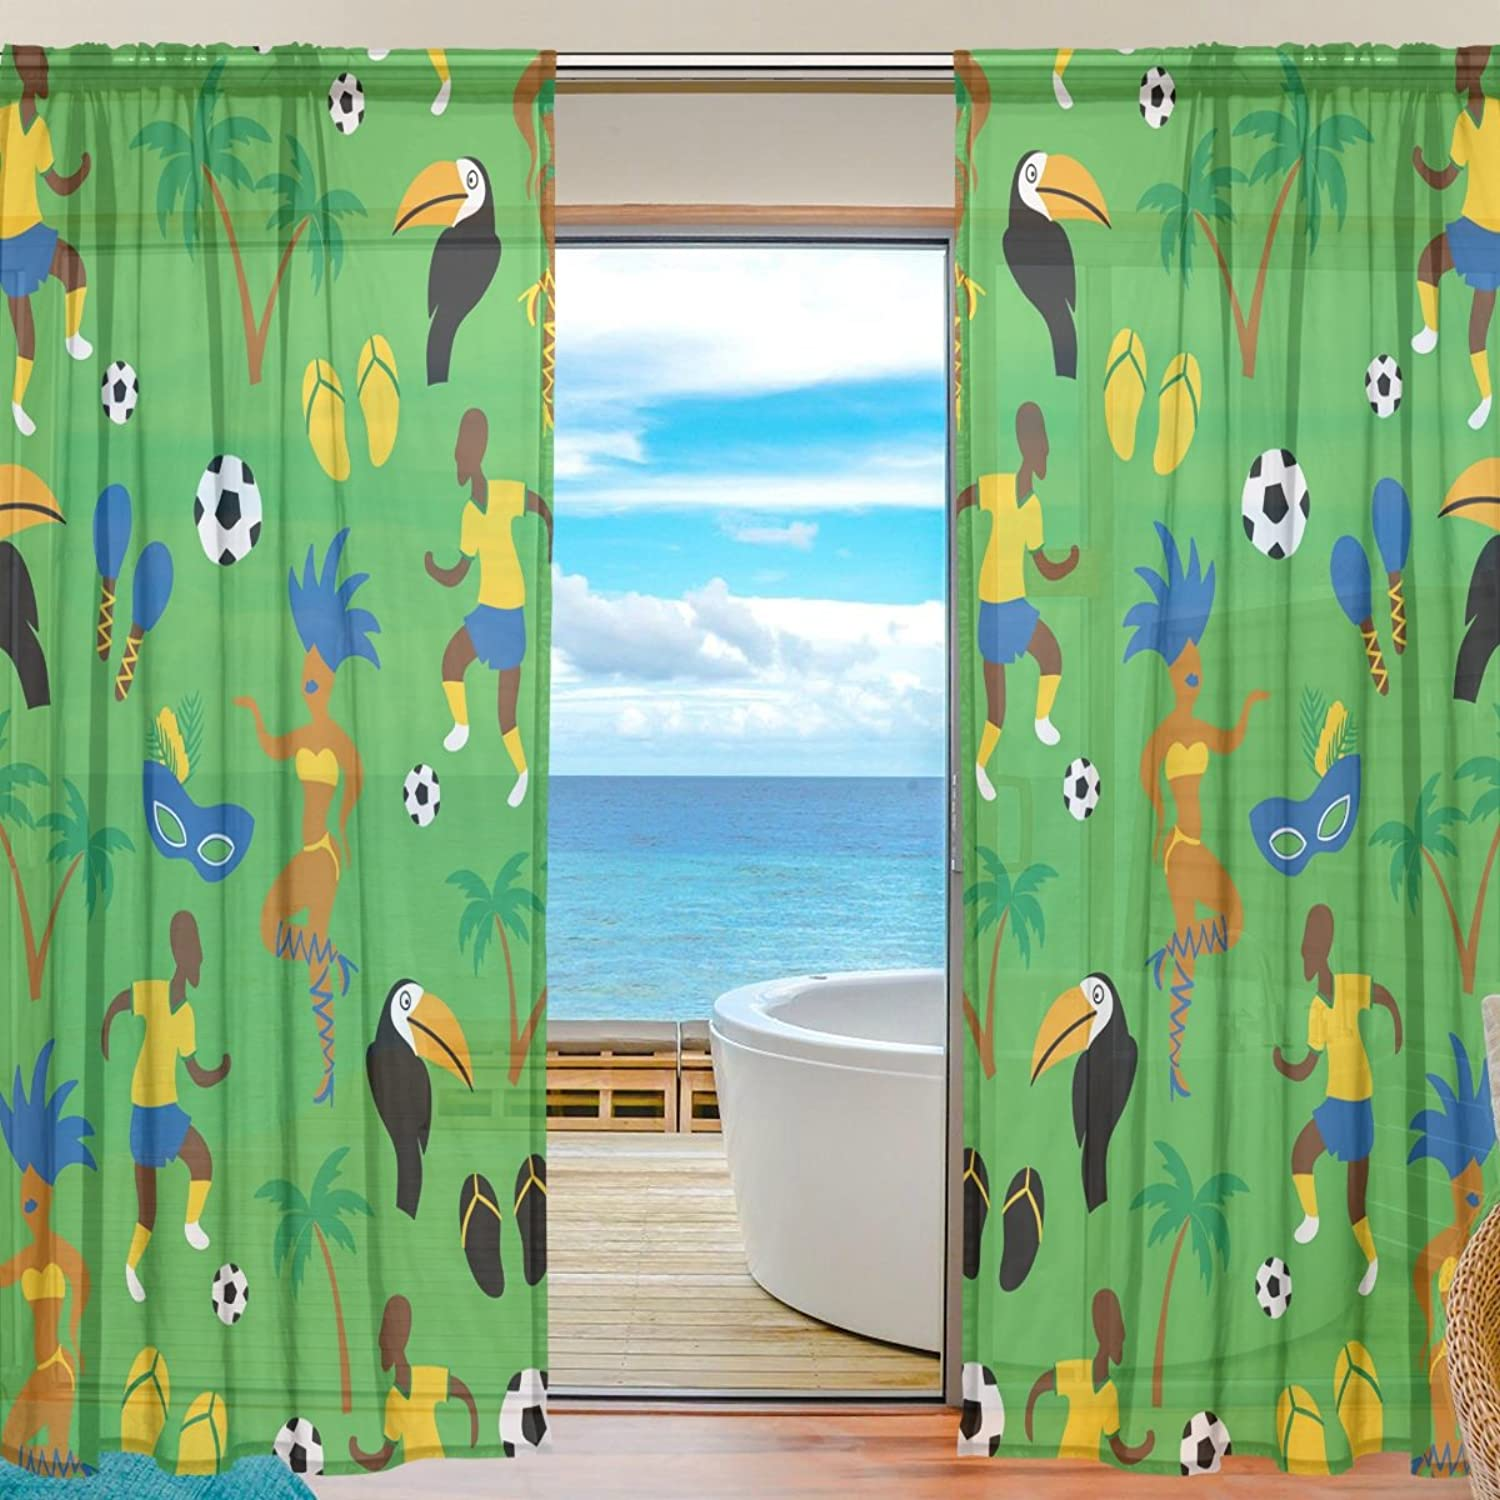 Vantaso Sheer Curtains 84 inch Long Africa Sport Man with Soccer for Kids Girls Bedroom Living Room Window Decorative 2 Panels